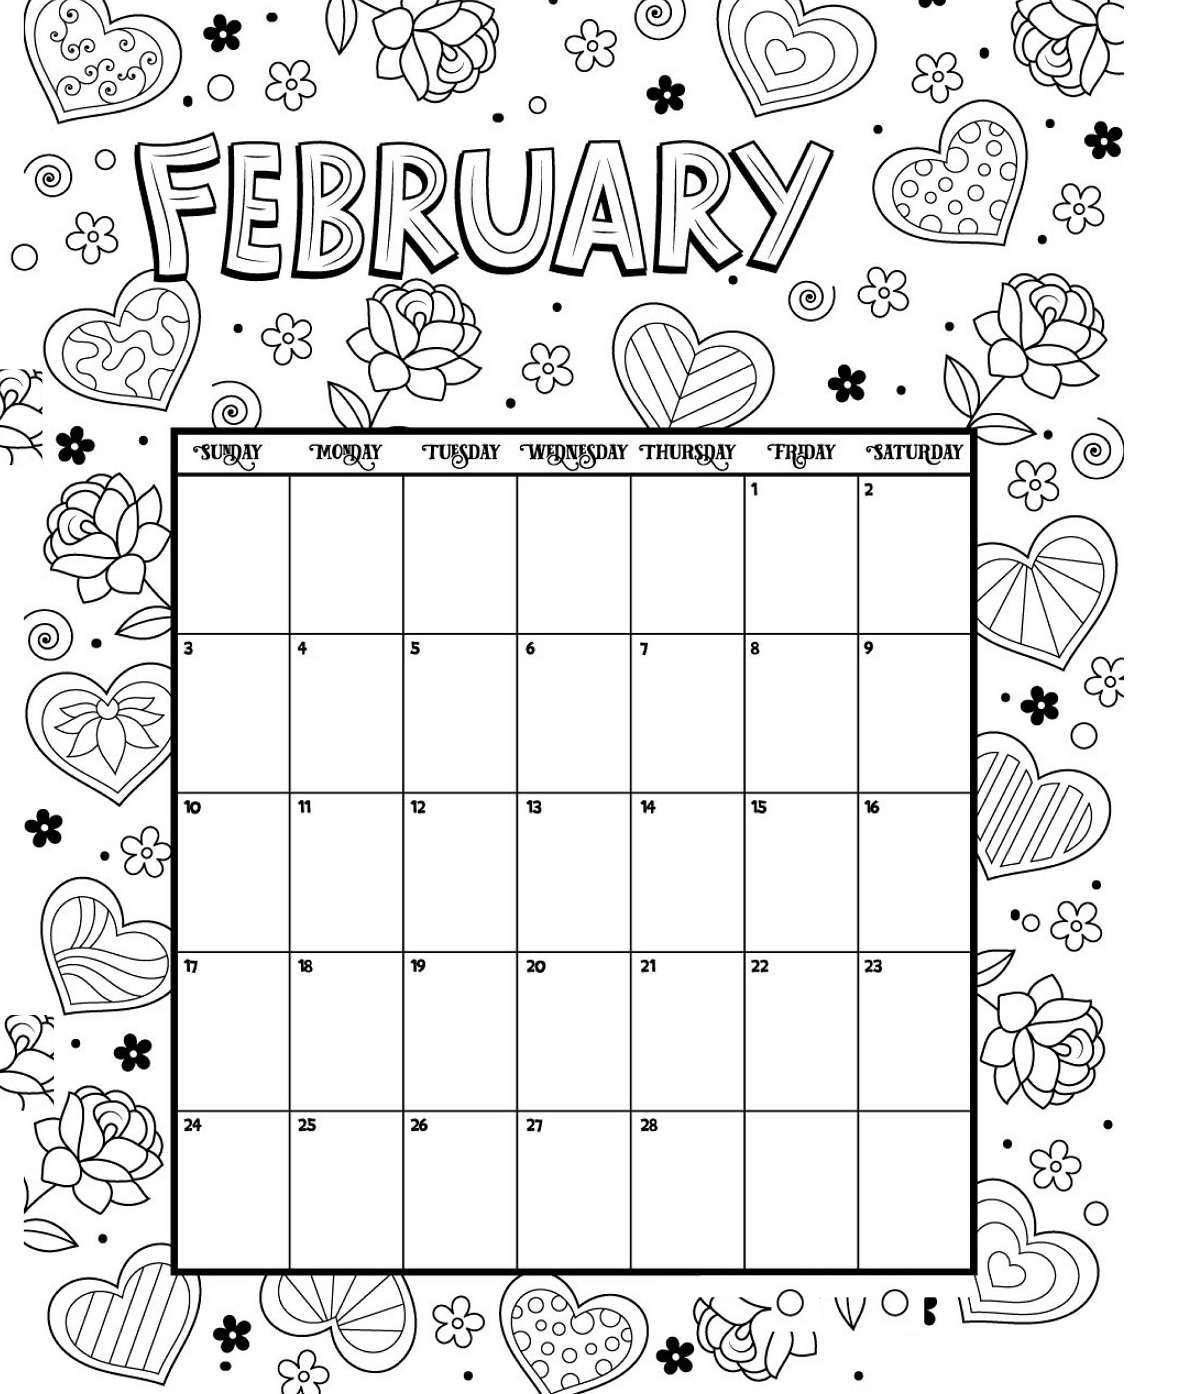 Coloring : Calendar Colorings February Printable Free For intended for 2019 2020 Calendar Printable Color In